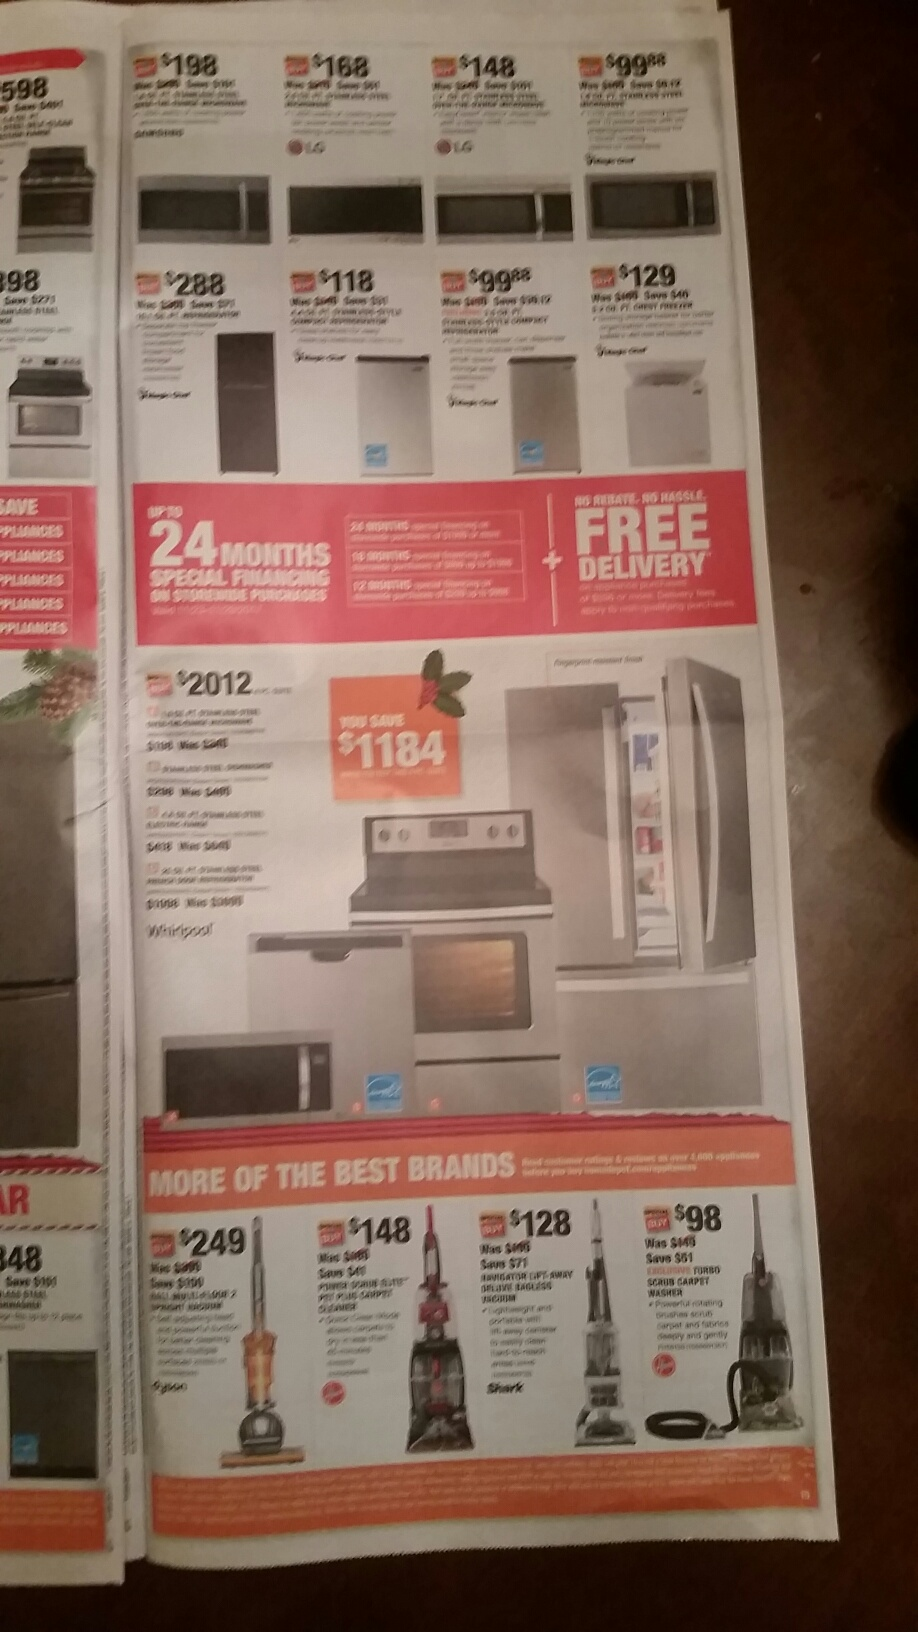 Home Depot Black Friday 2019 Ad  Smart Home Kitchen Appliance Vacuum Tool  Cyber Monday